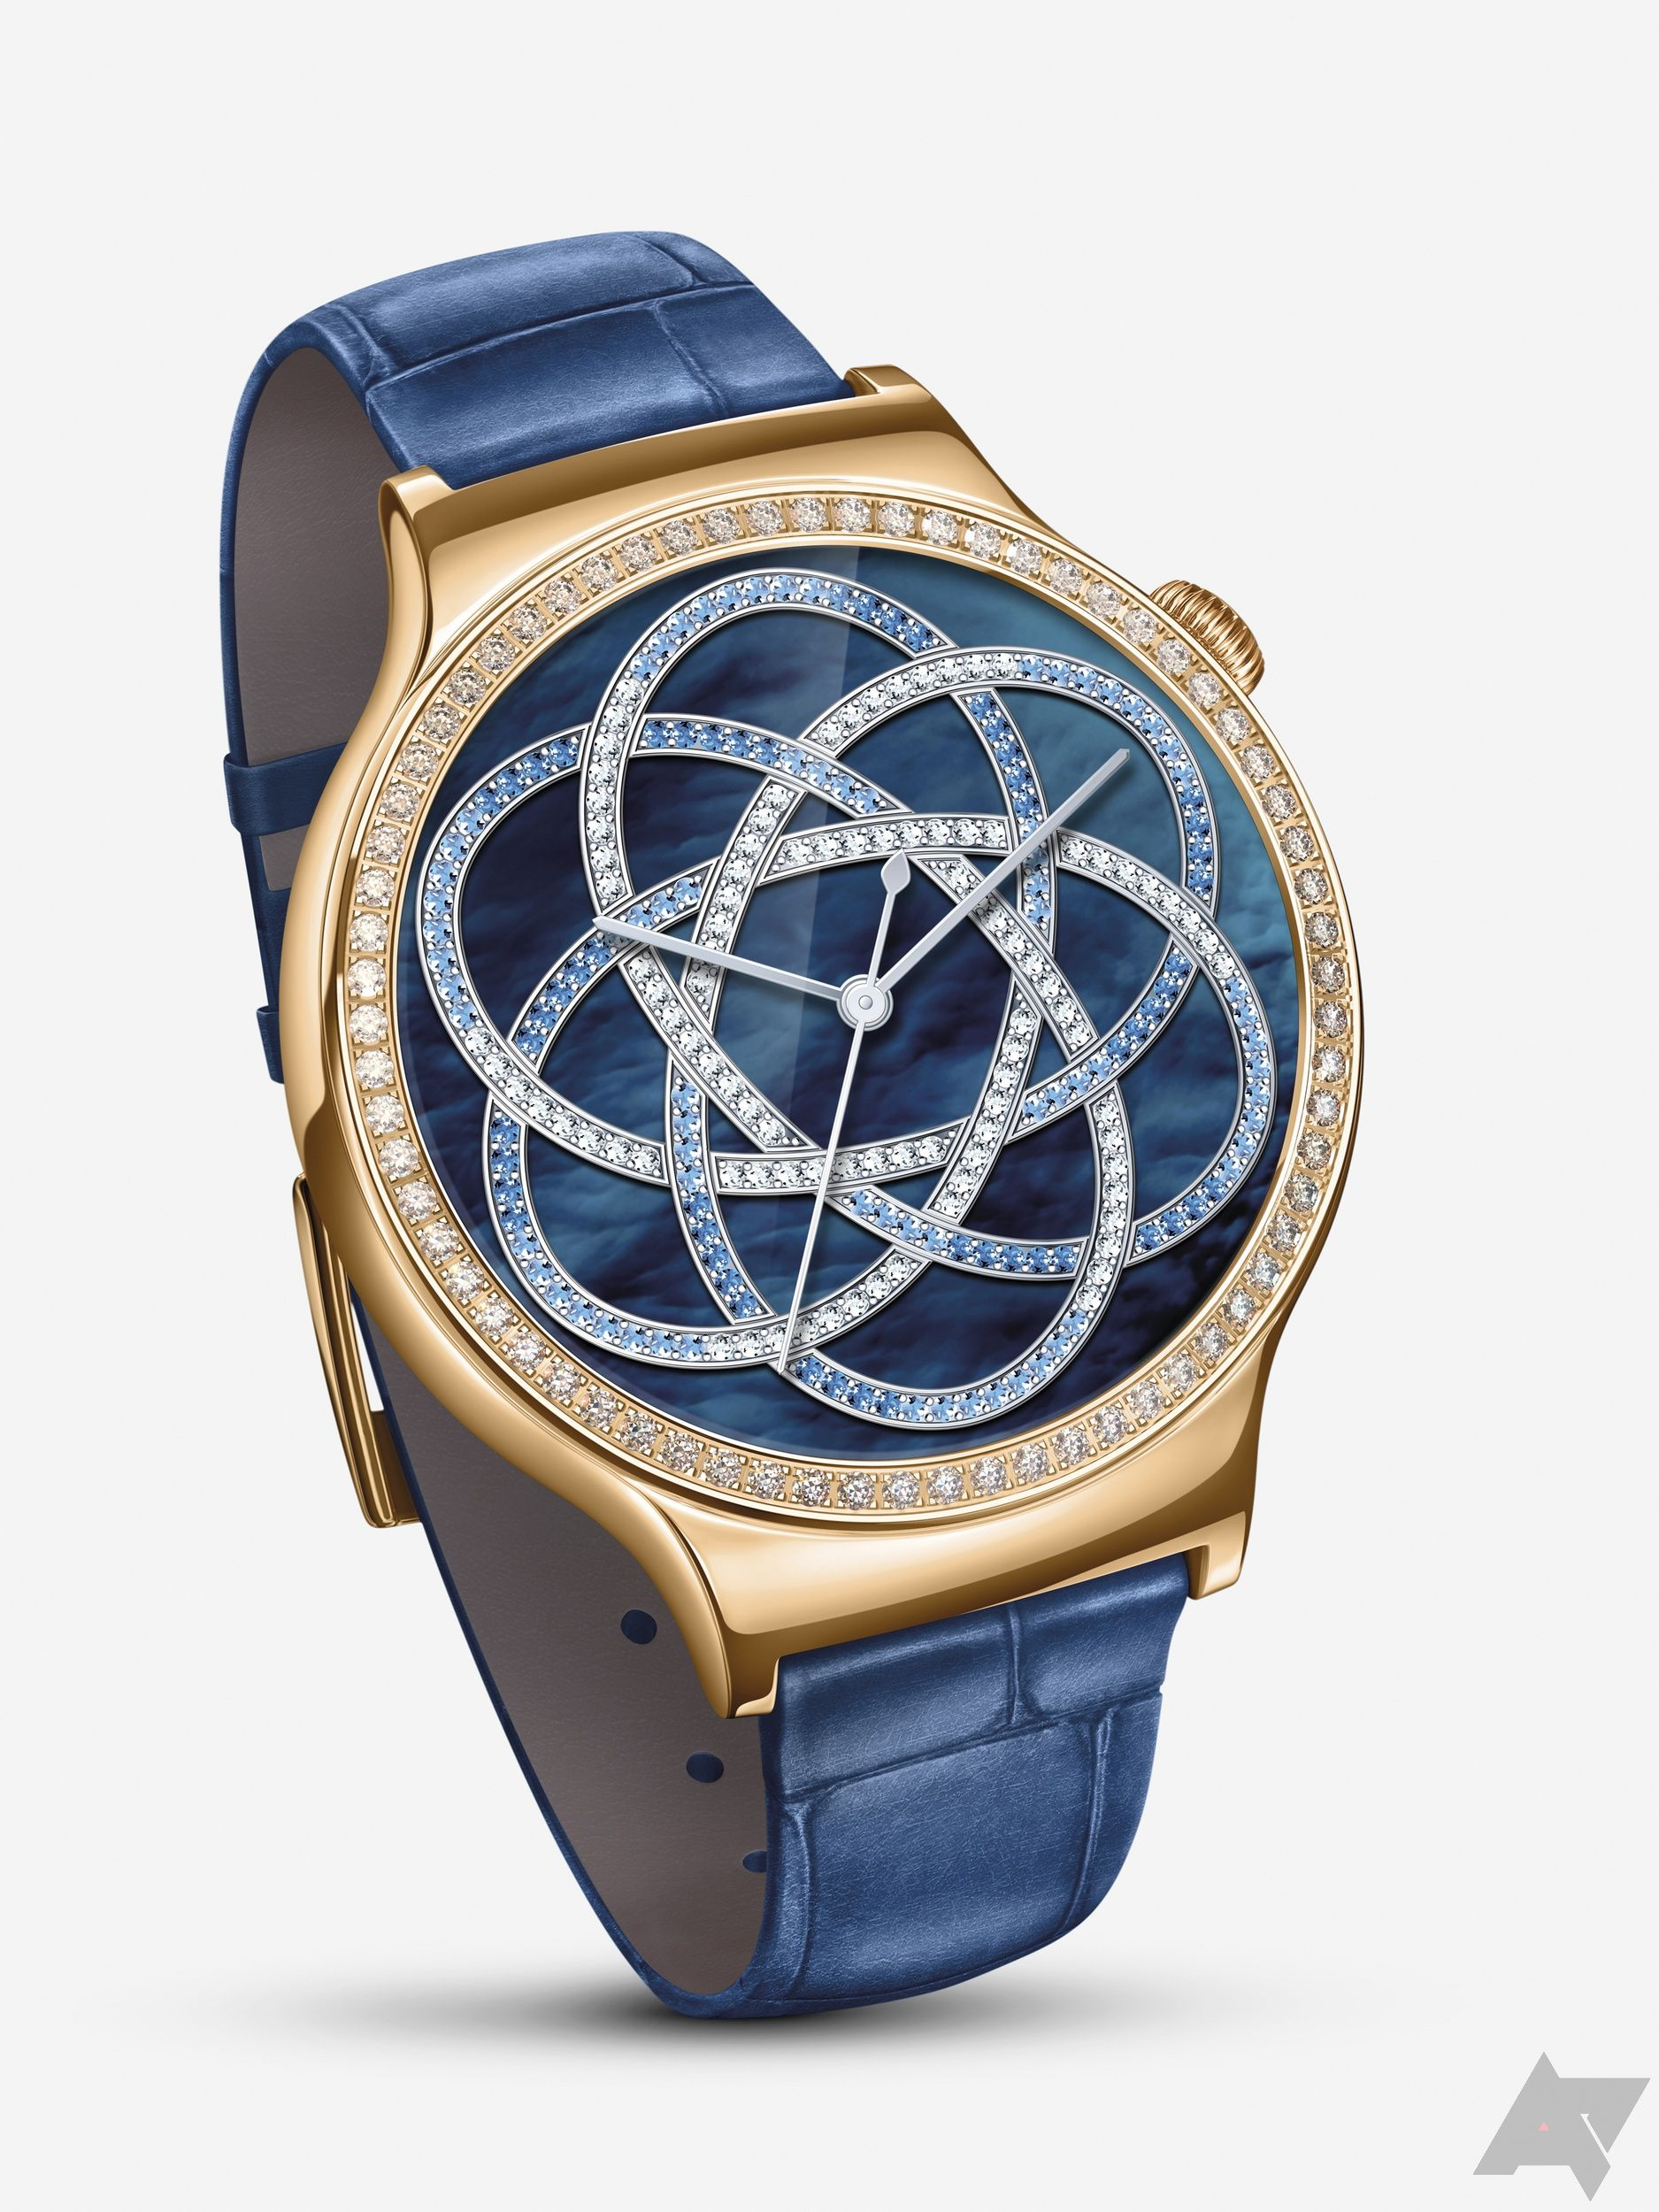 wm_Huawei Watch Jewel_1